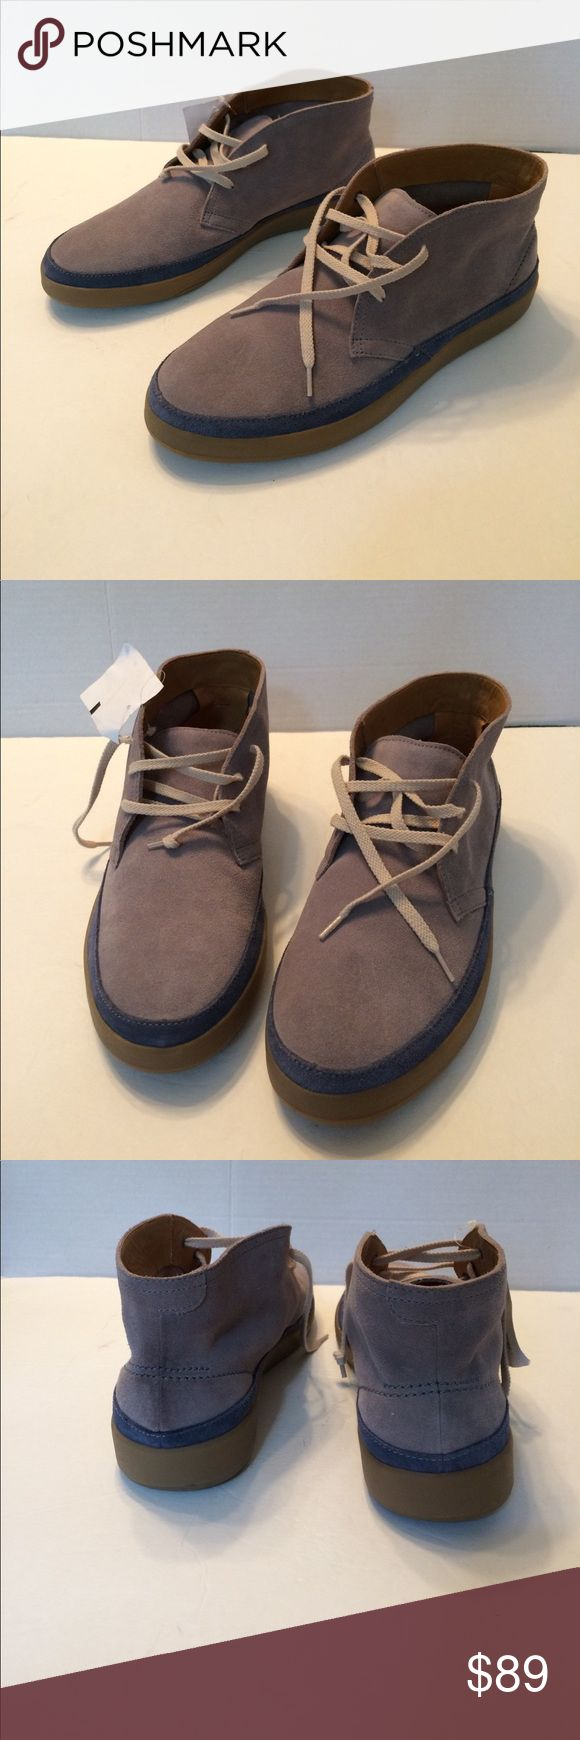 Cole Haan Men's gray Suede Chukka Boot Cool looking and great quality. Gray suede leather with blue trim around the soles. Leather lining and rubber soles. Three eyelet Lace up. New with dept. store tag and no box. Retails for $188.00 Cole Haan Shoes Chukka Boots